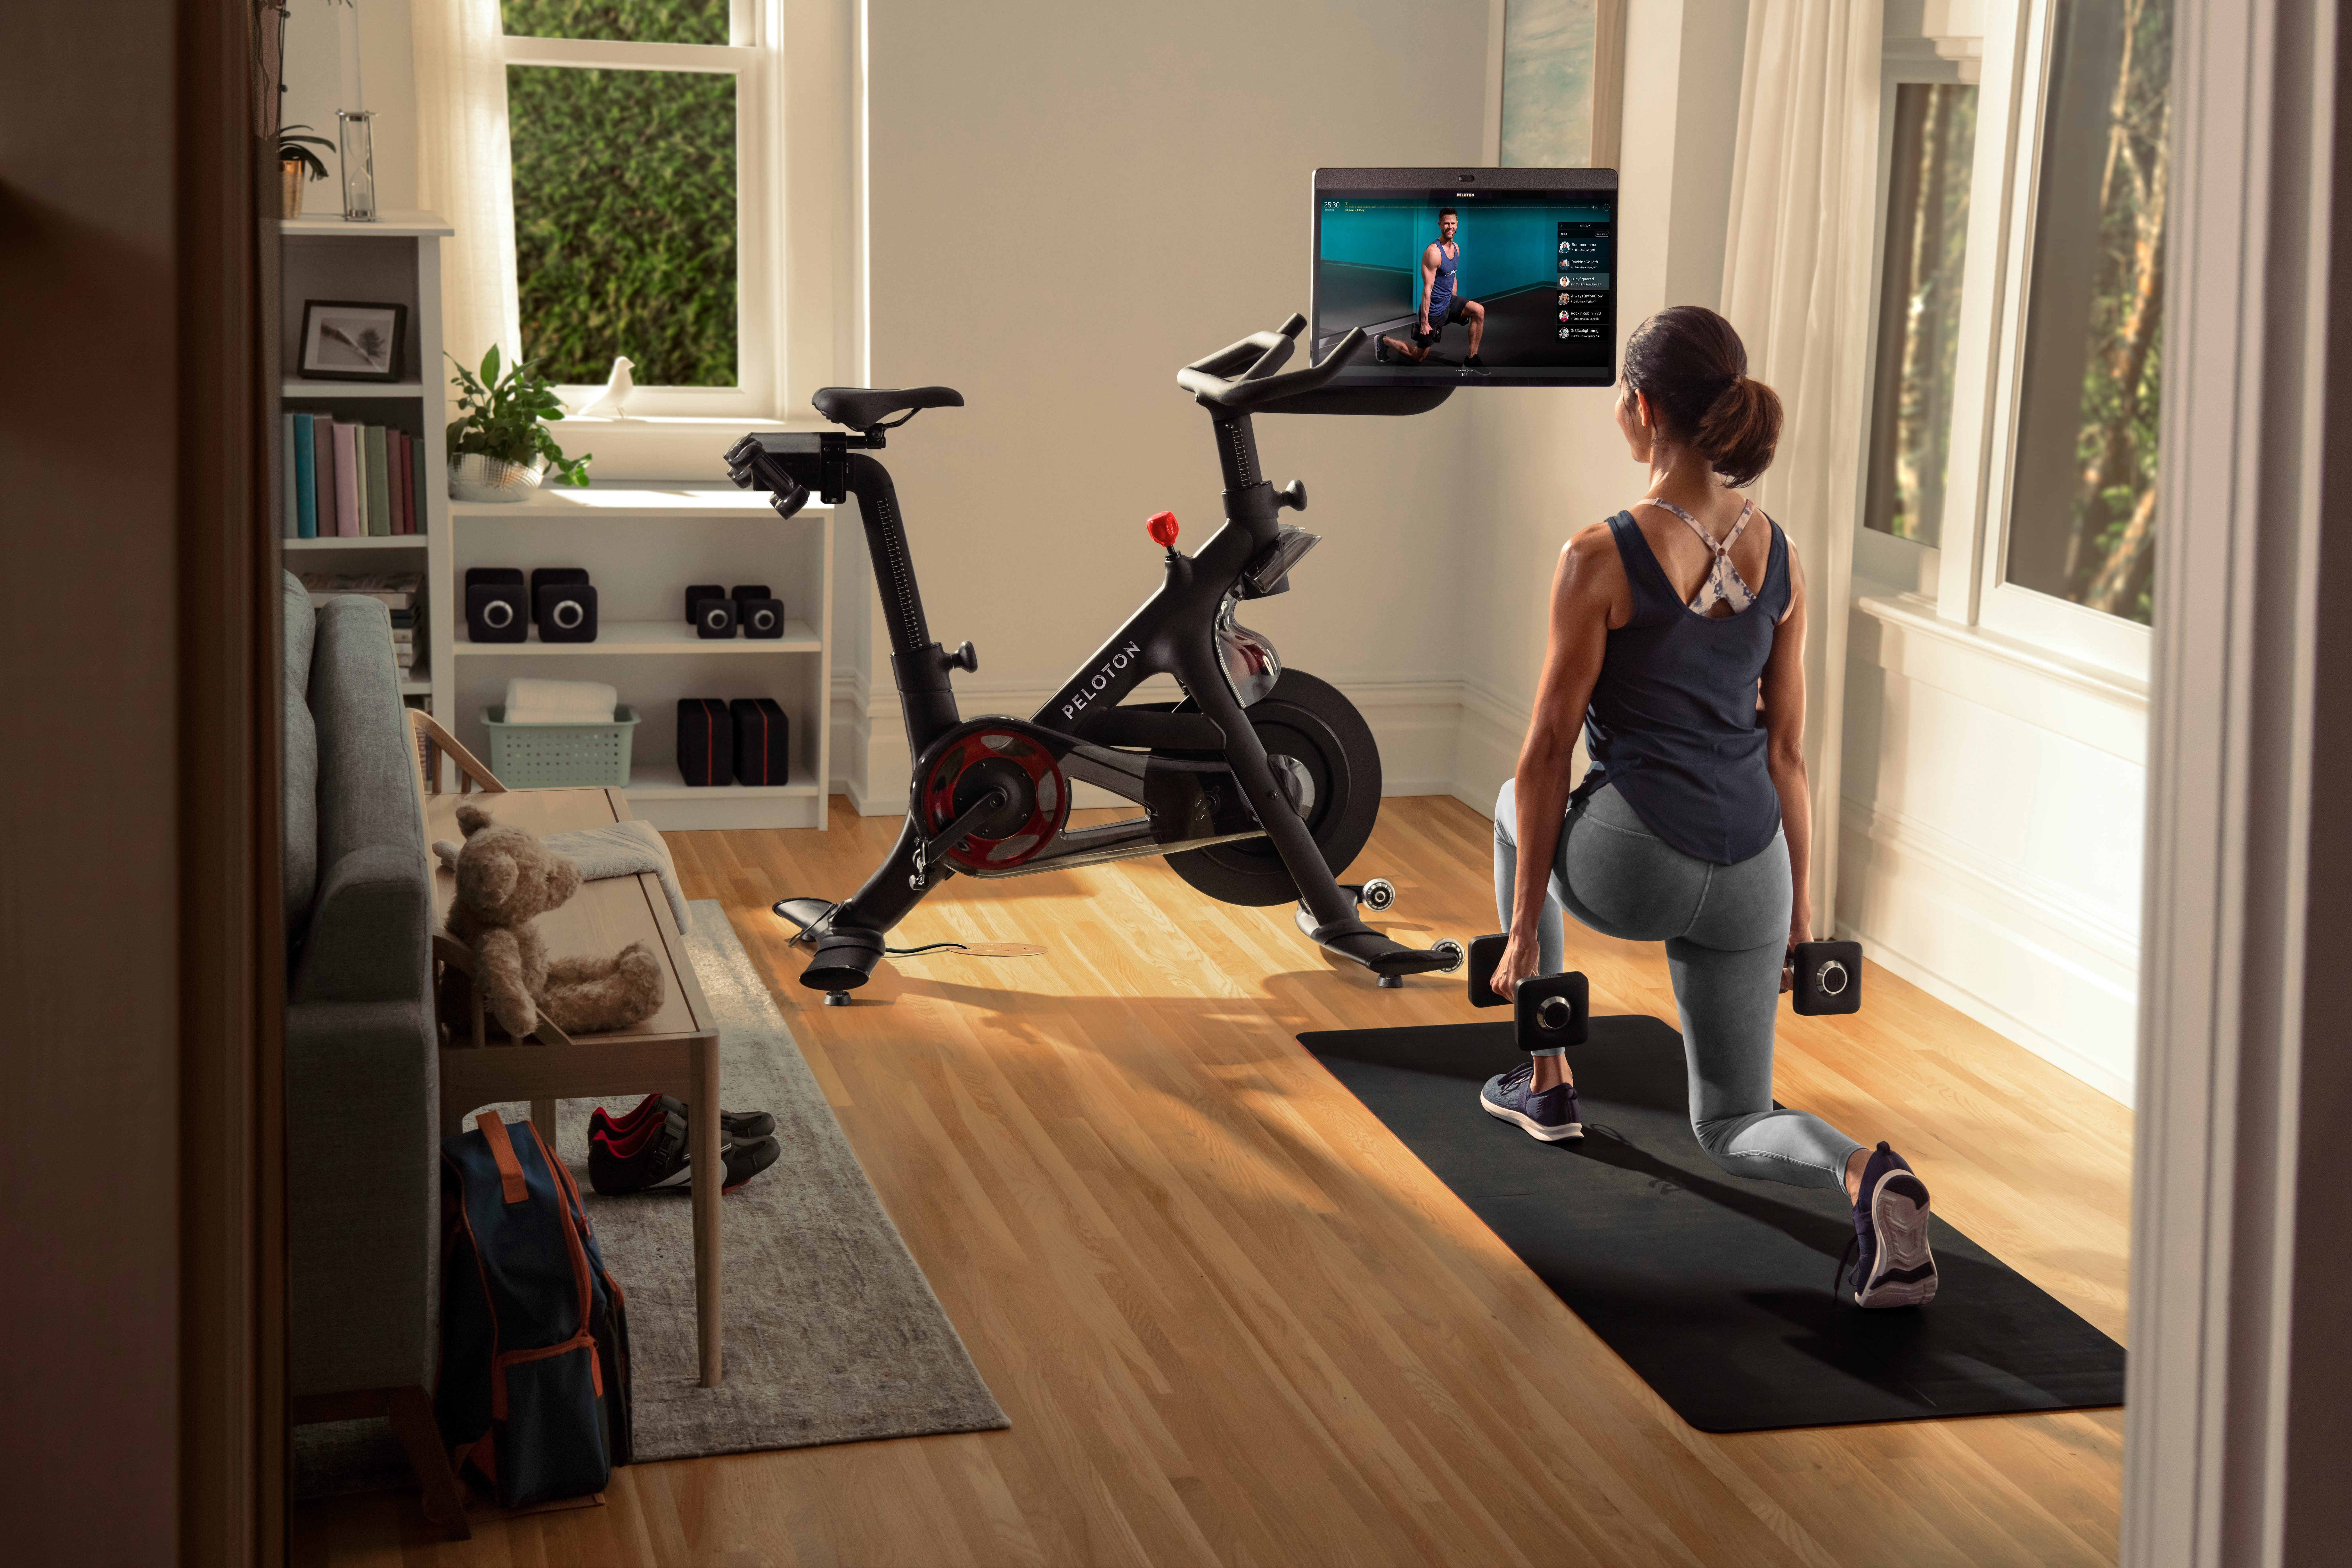 peleton bike+ review canada | image of the peleton with woman doing floor exercises next to it